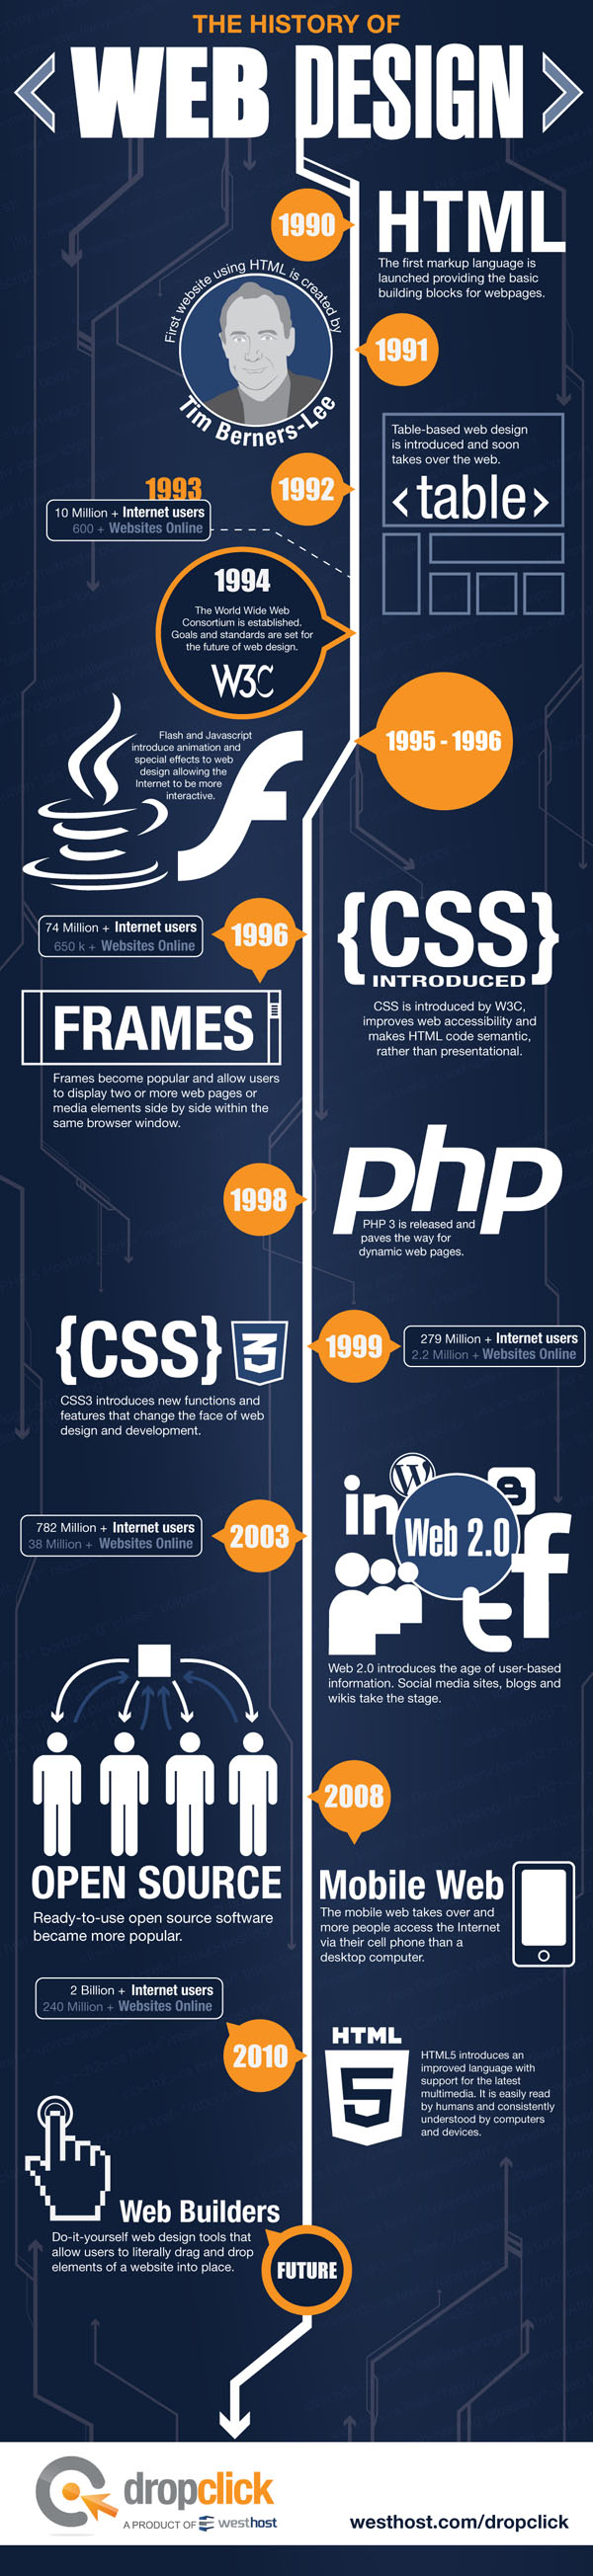 the history of web design infographic The History of Web Design [Infographic]